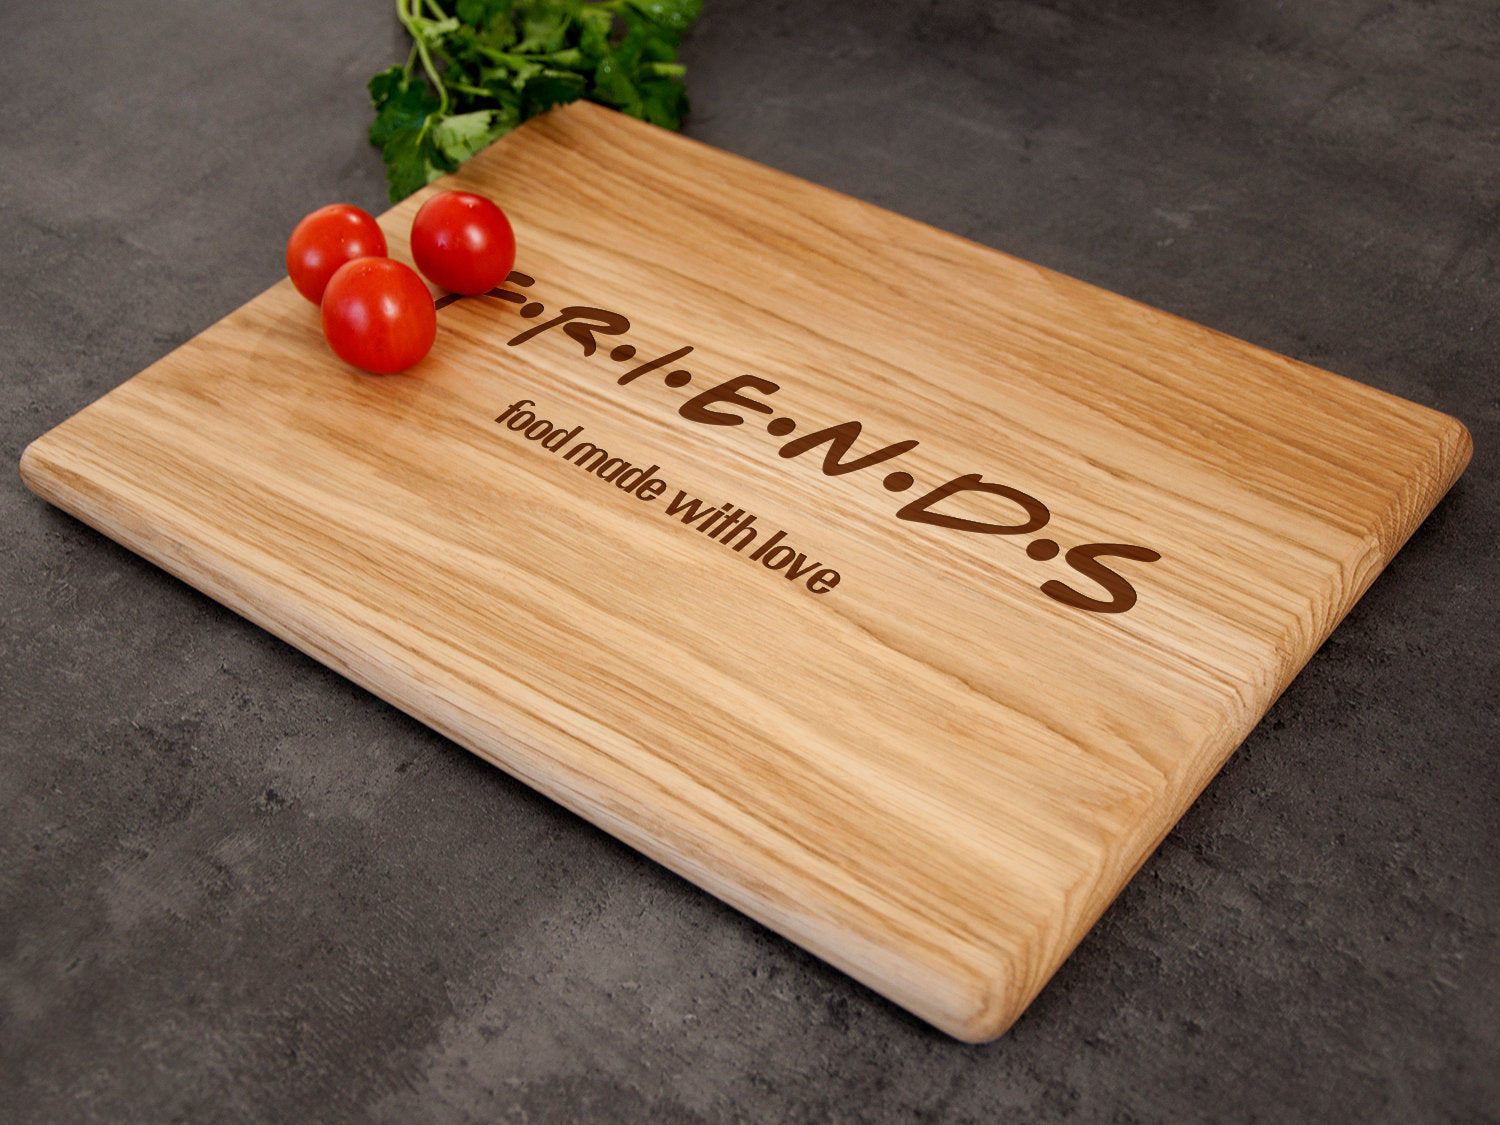 Custom Cutting Board Friends TV Show Gifts Engraved Chopping Board Birthday Gift Kitchen Board Graduation Gift Christmas Gift New Home Gift